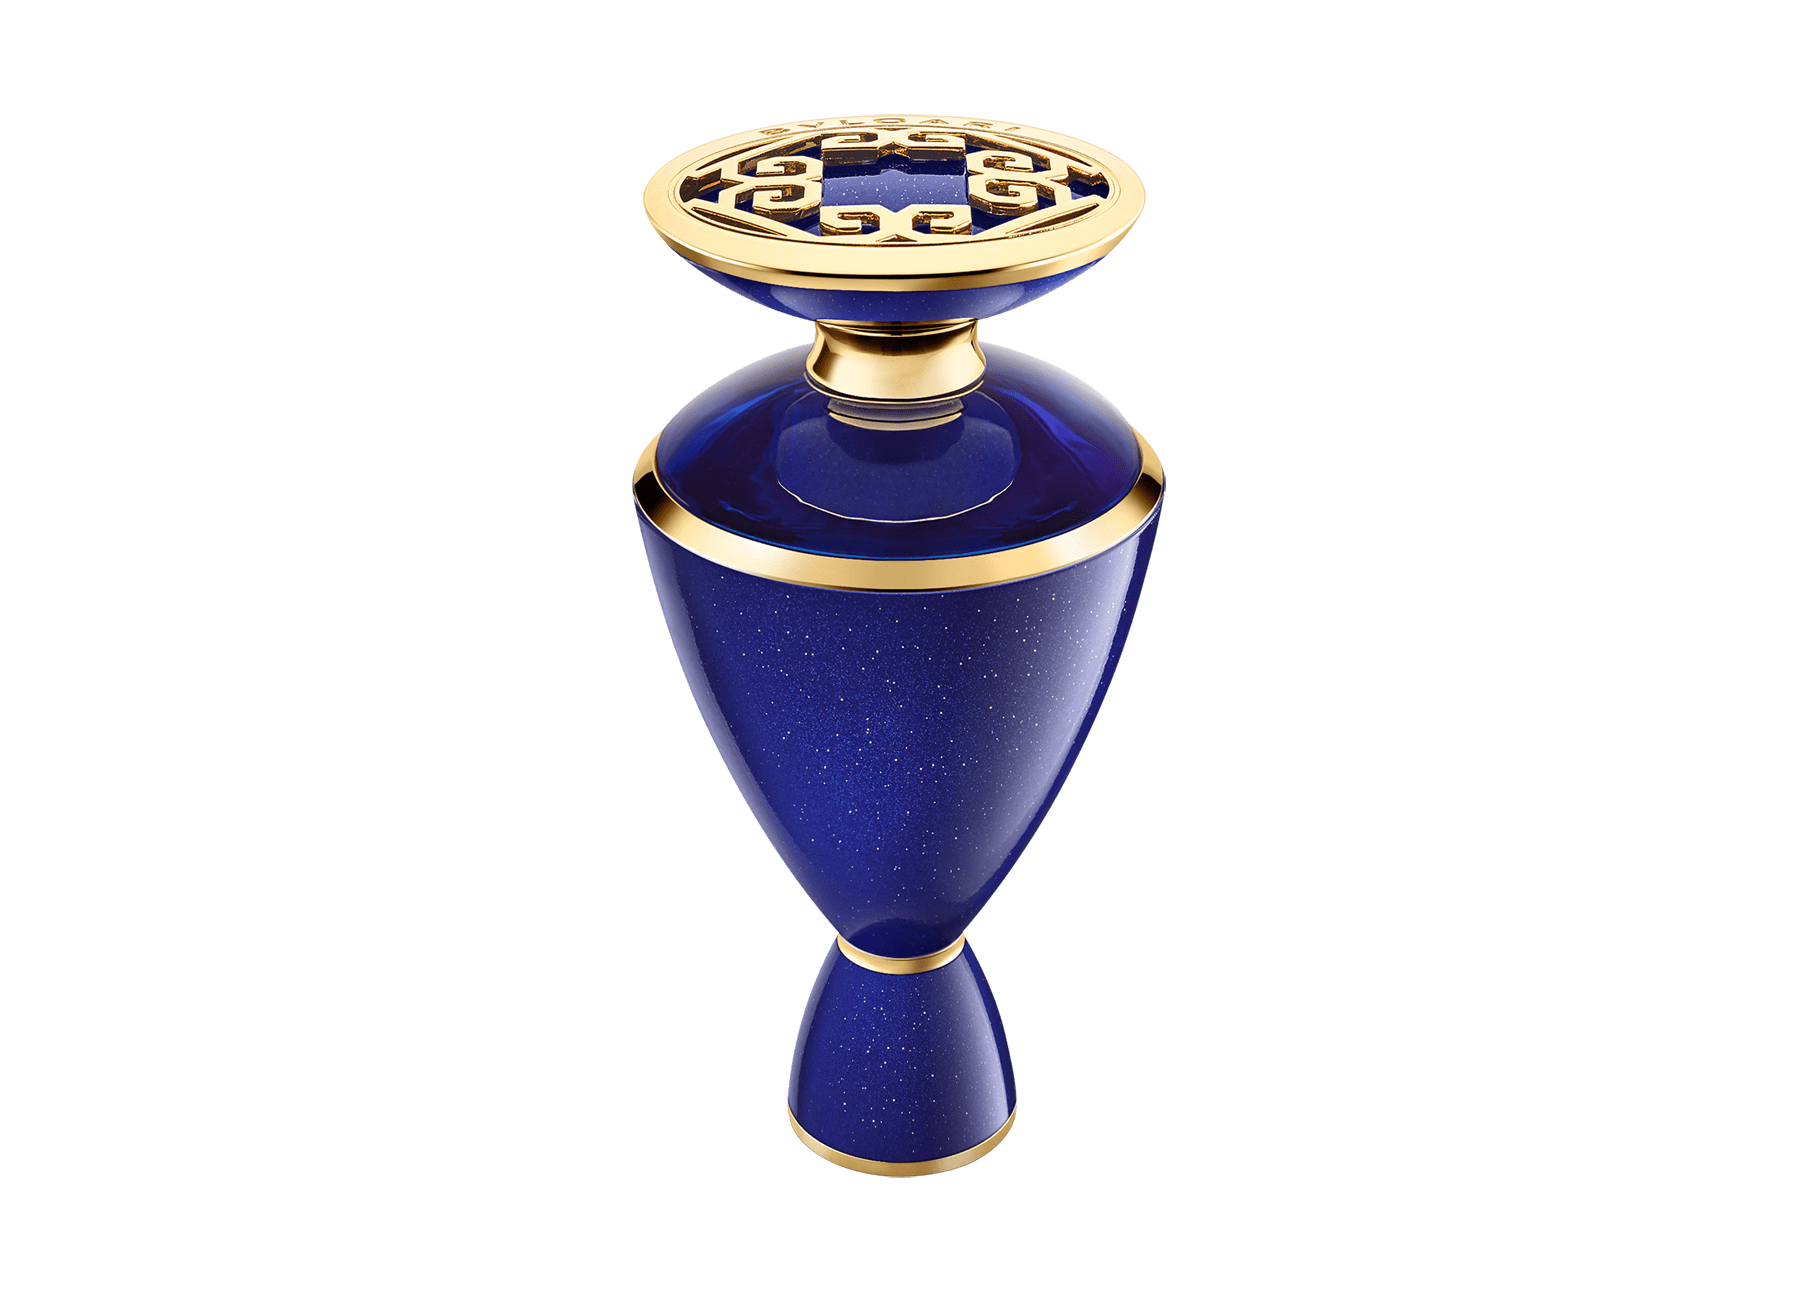 The encounter of two gems of nature: the iridescent Aventurine gemstone and precious Saffron spice harmoniously give way to this magnificent new fragrance collector's duo 41493 image 1